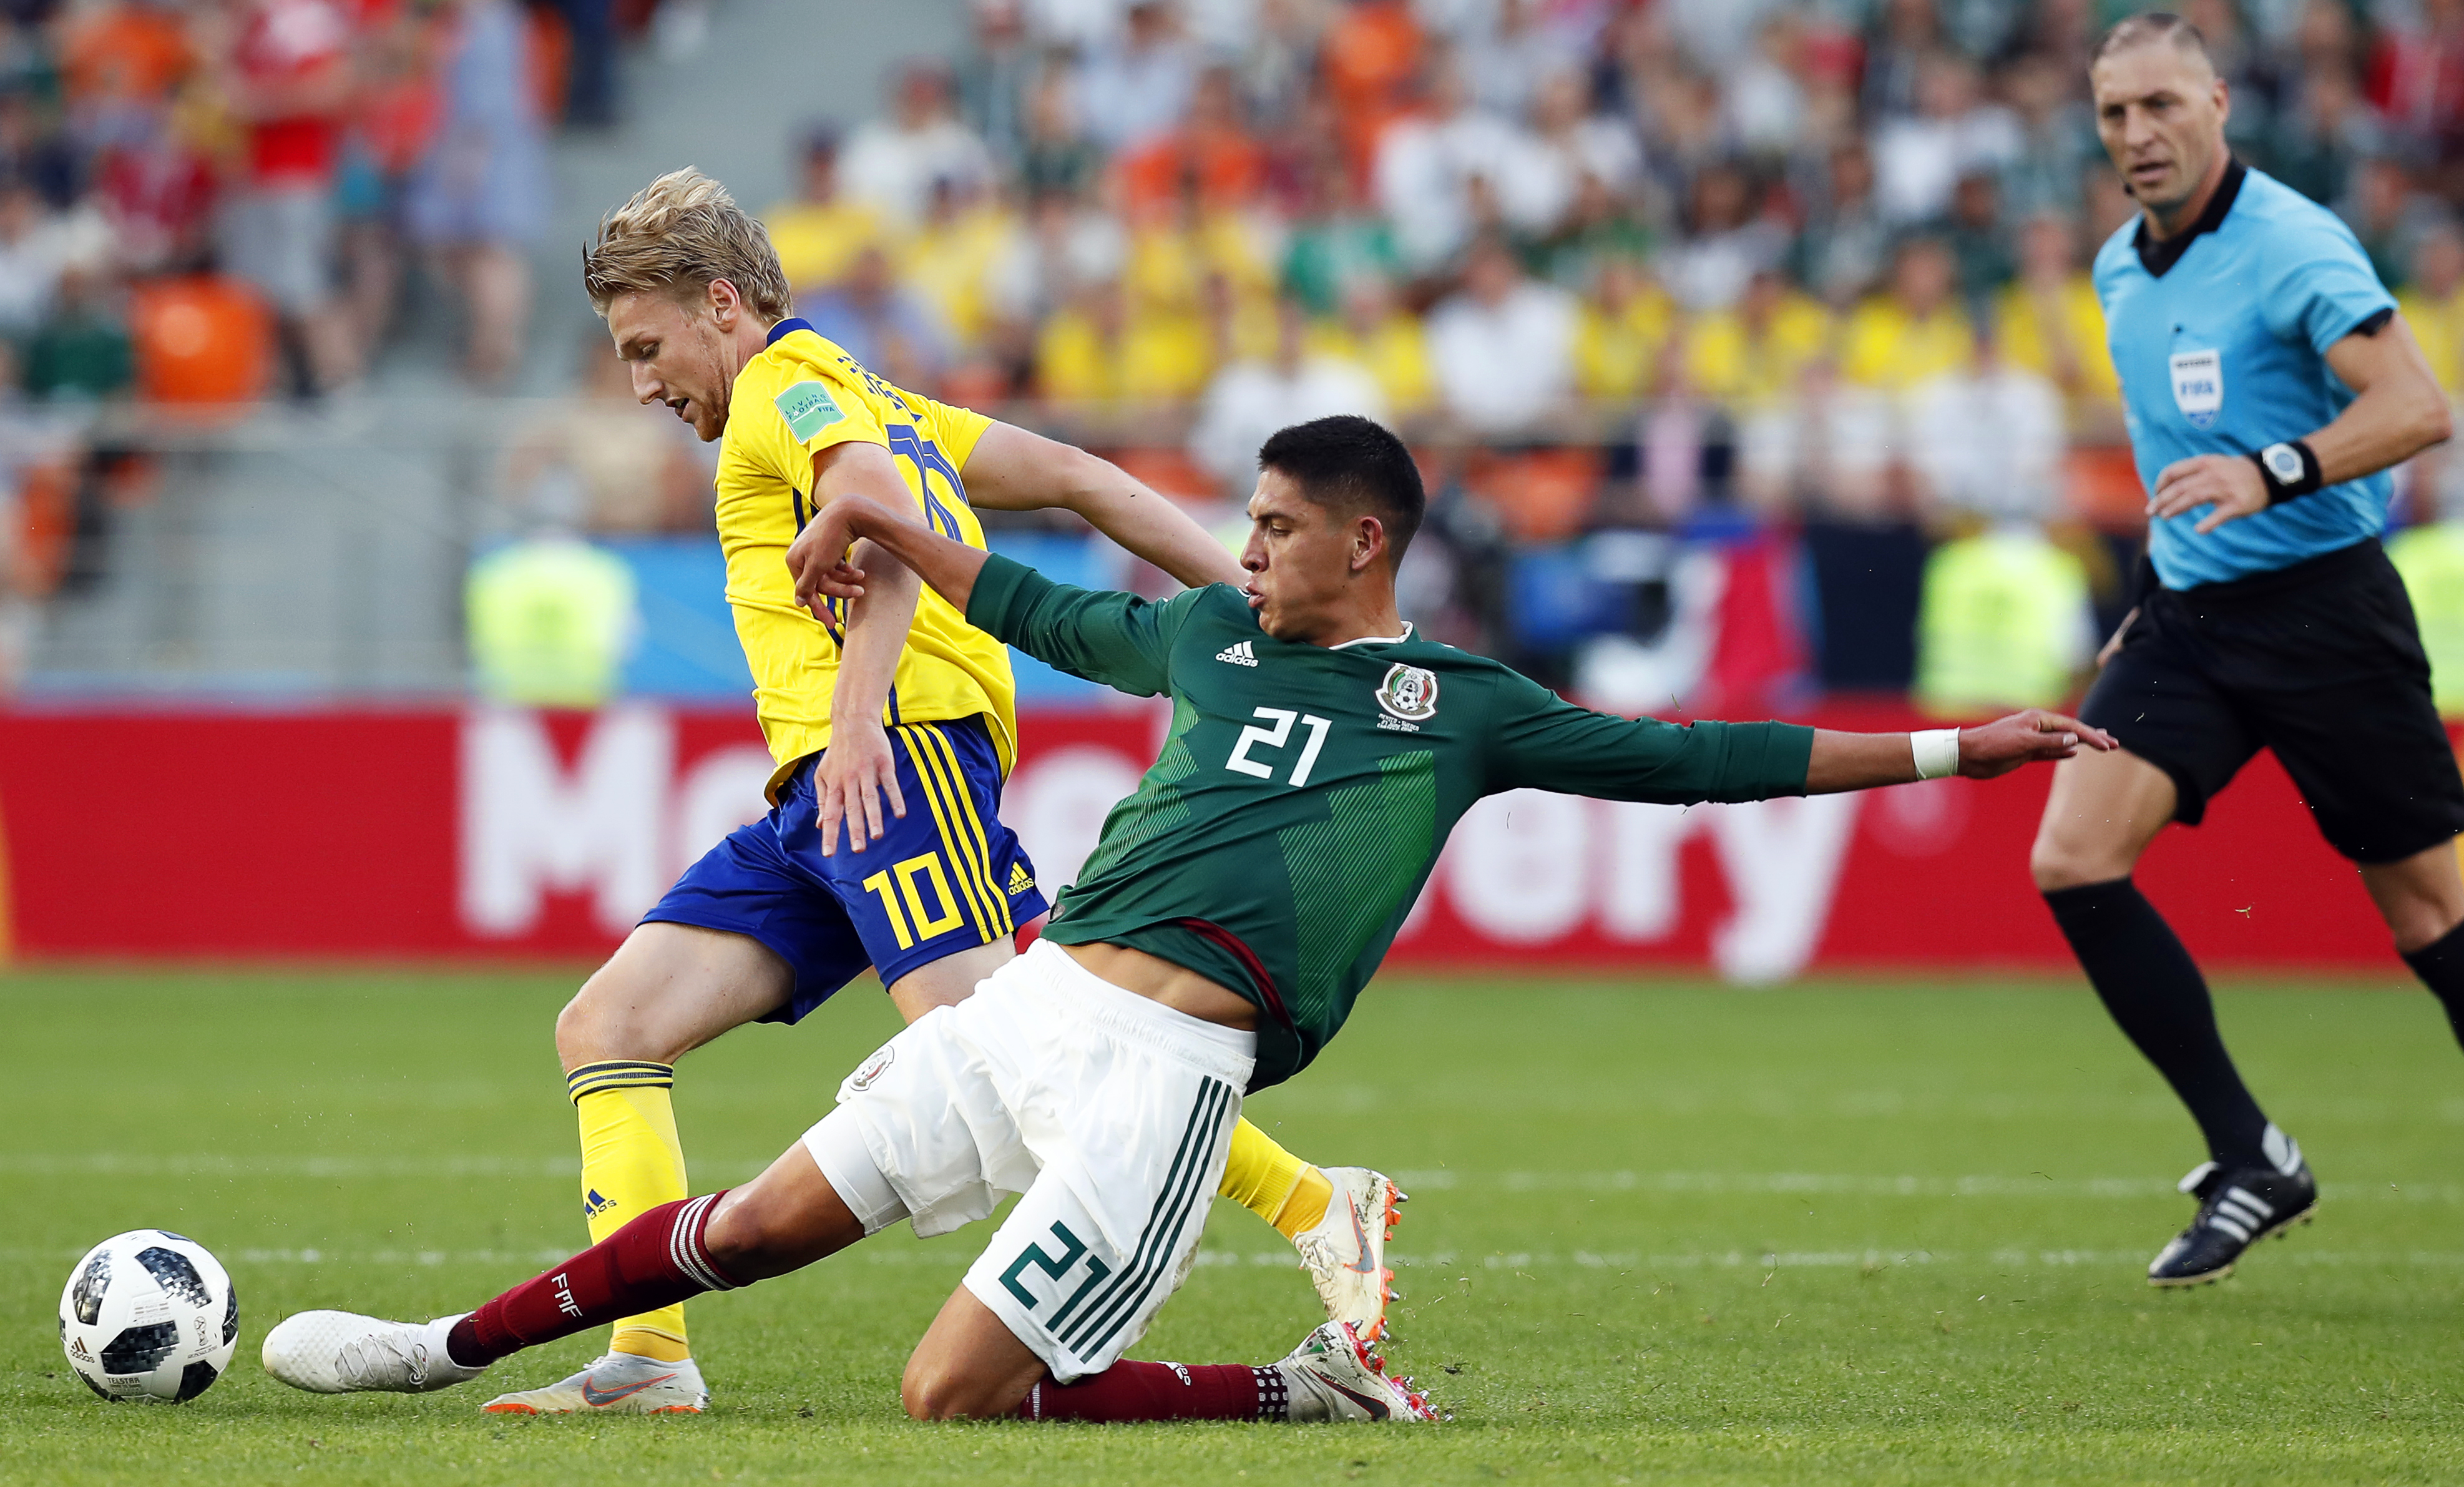 259ca4f41d8 ... (C) of Mexico during the FIFA World Cup 2018 group F preliminary round  soccer match between Mexico and Sweden in Ekaterinburg